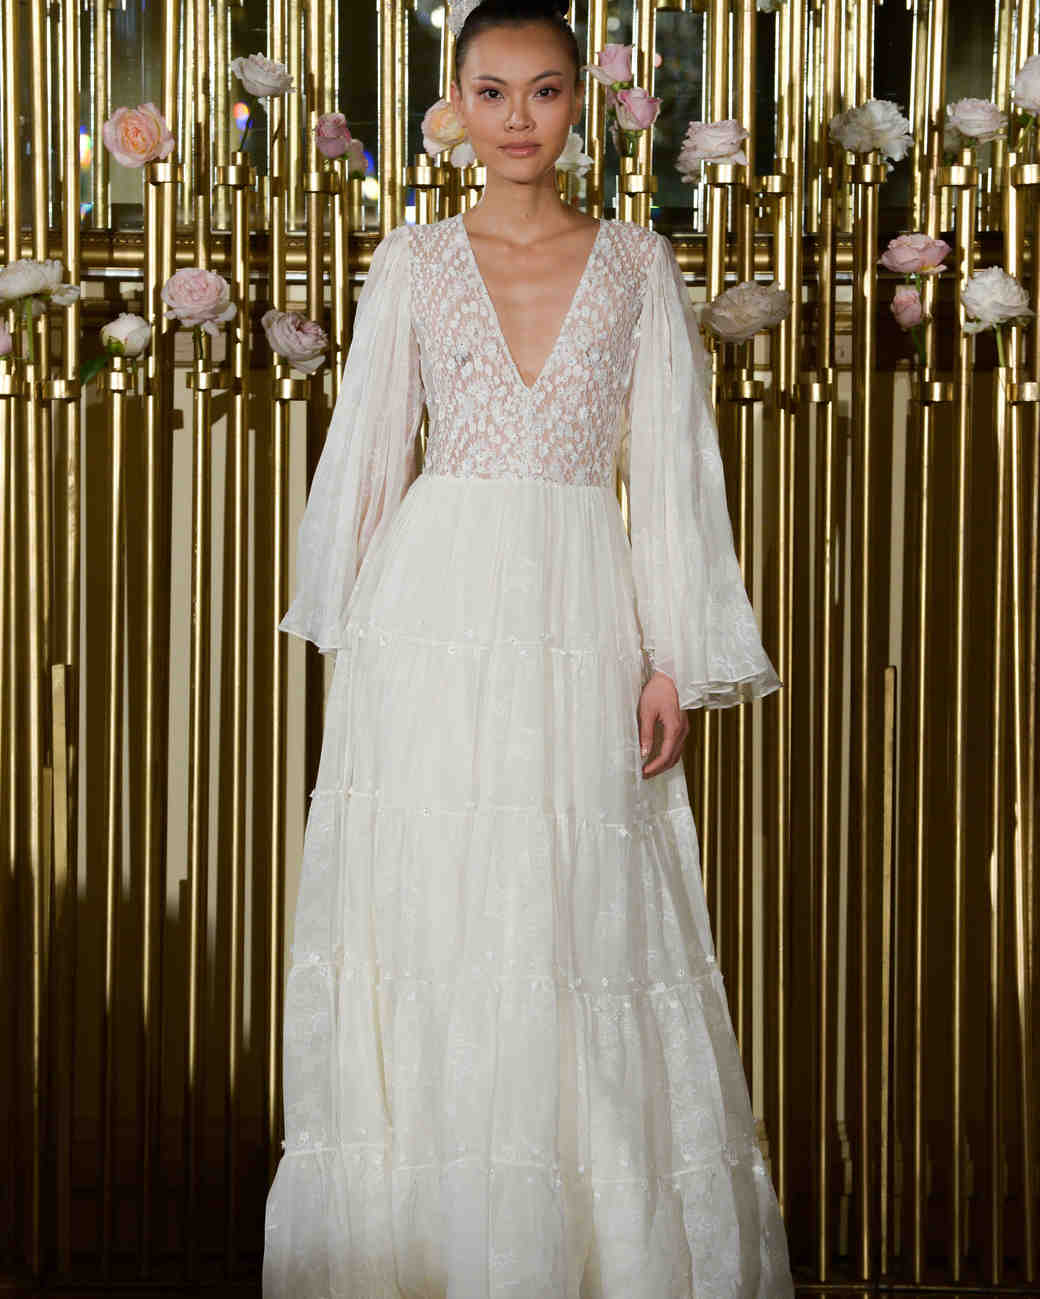 francesca-miranda-wedding-dress-spring2018-6339053-004_vert.jpg